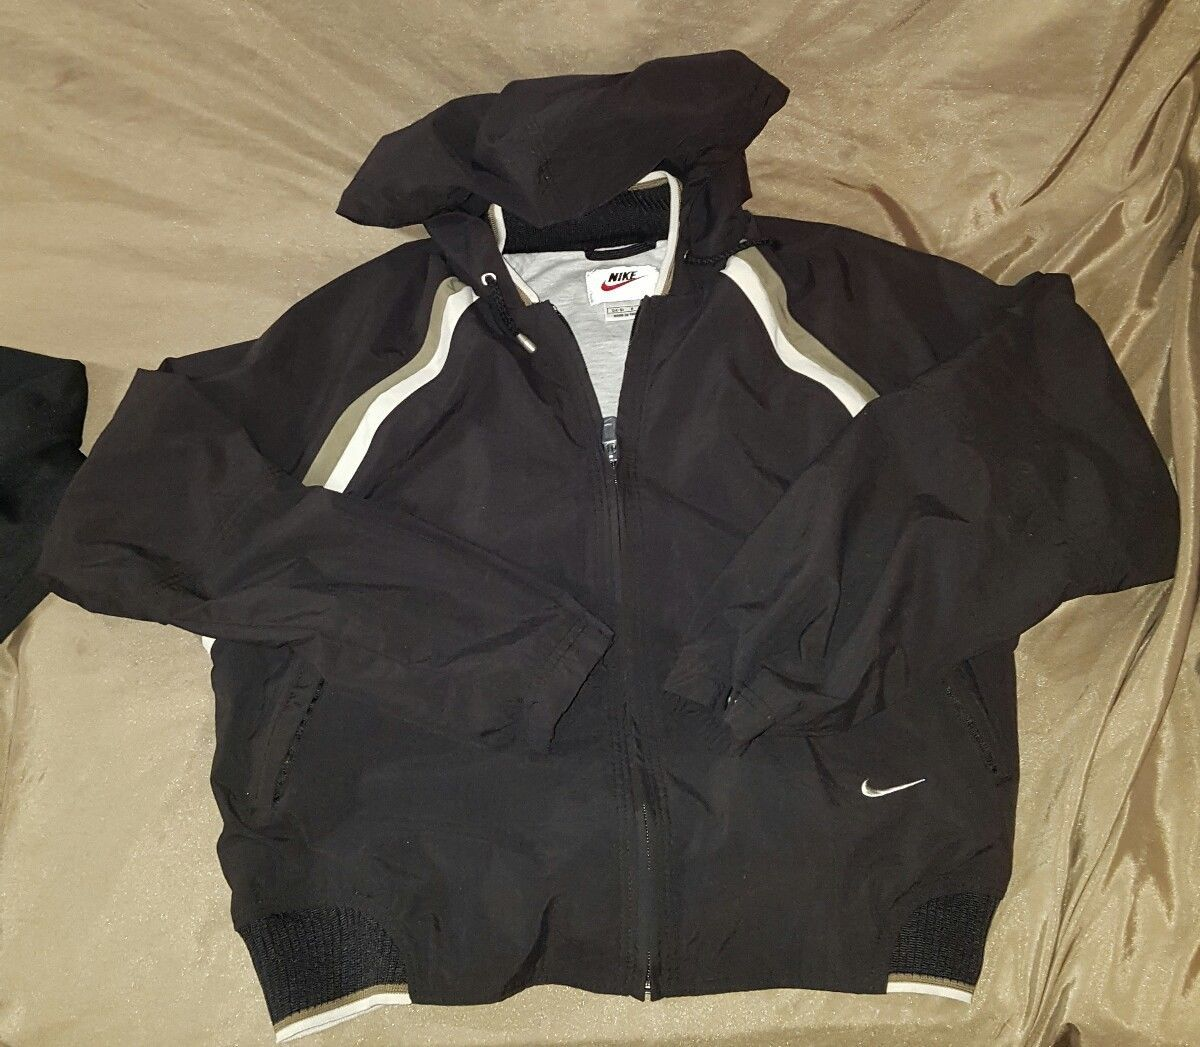 outlet store de7c8 6b28f Womens SM Oakland A's Nike Jacket MLB and similar items